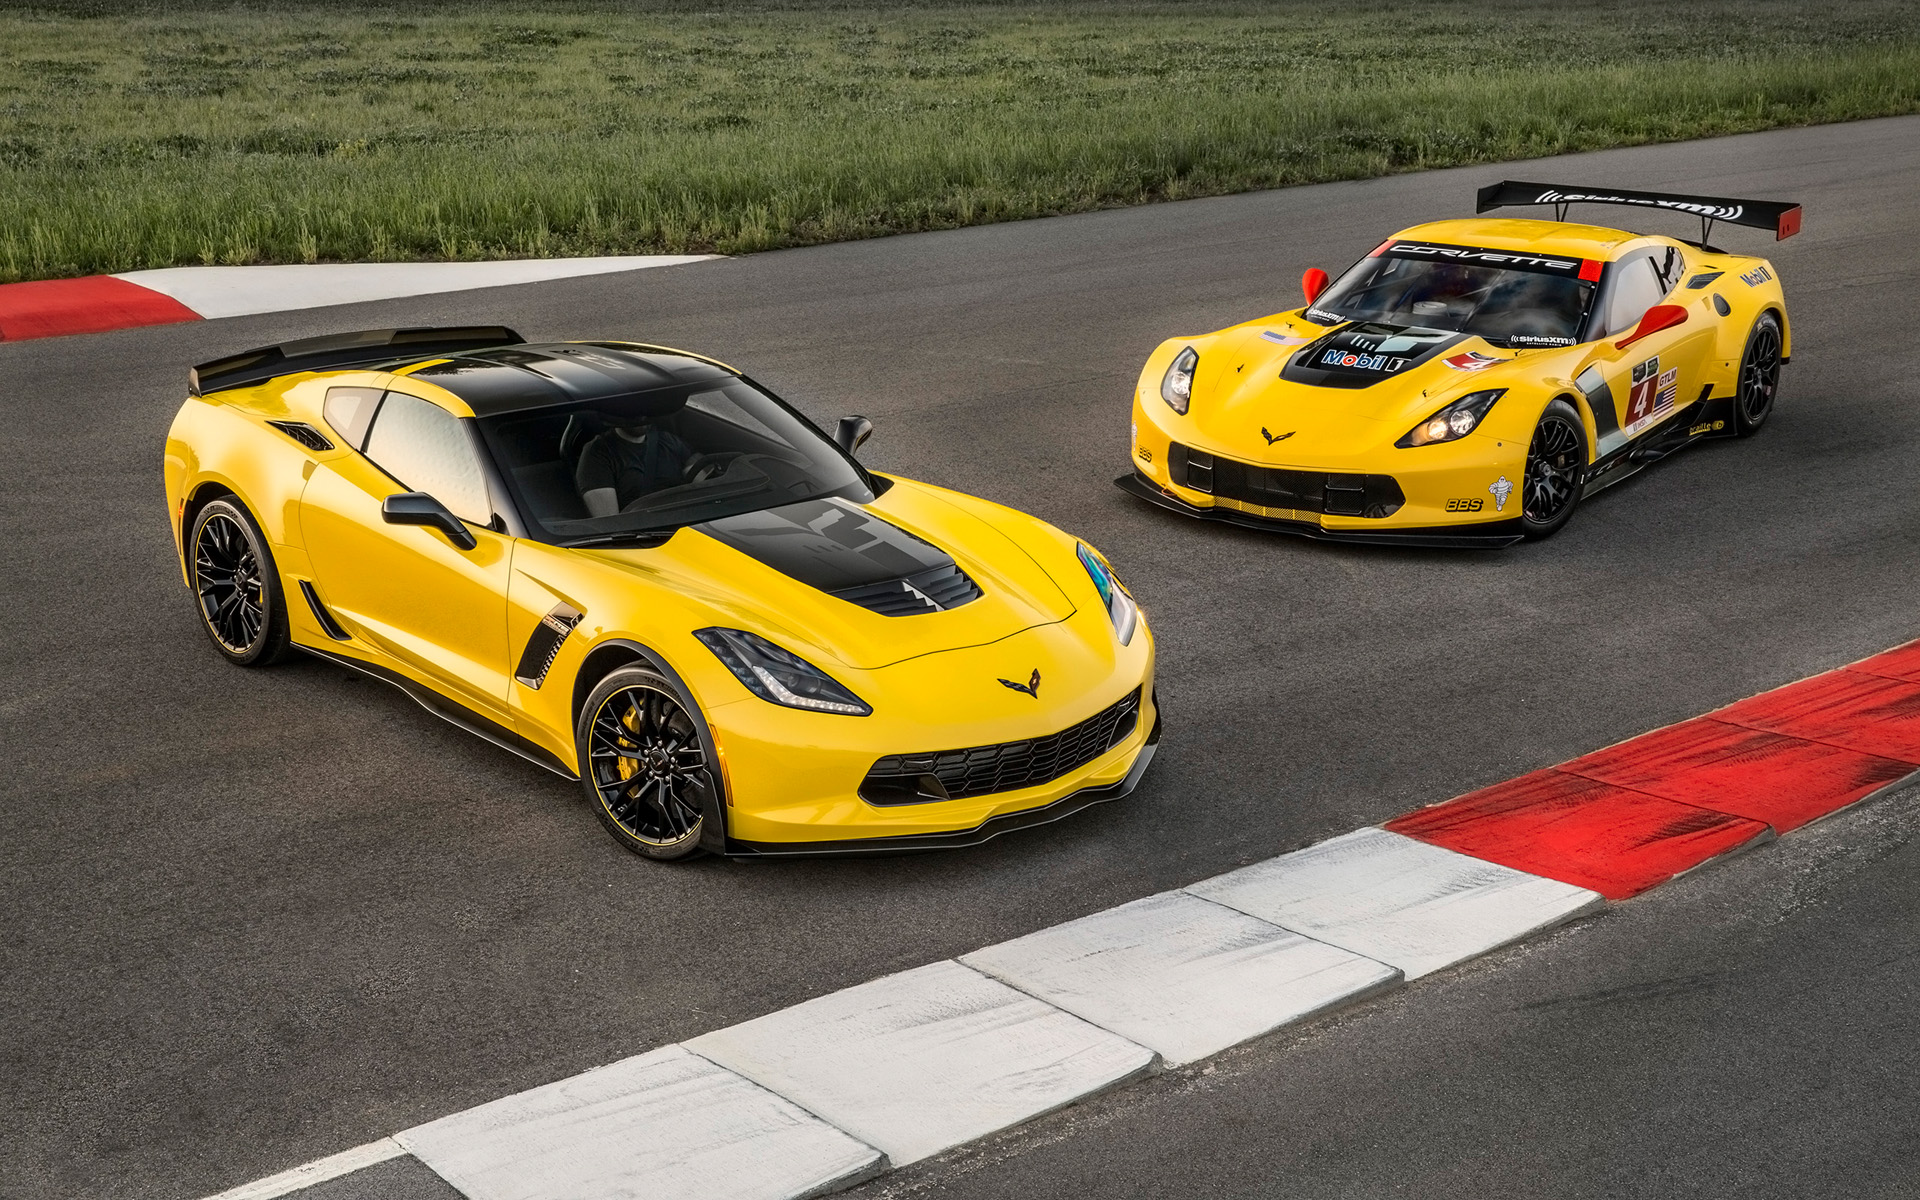 2016 Chevrolet Corvette Z06 C7R Edition   Duo   1   1920x1200 1920x1200